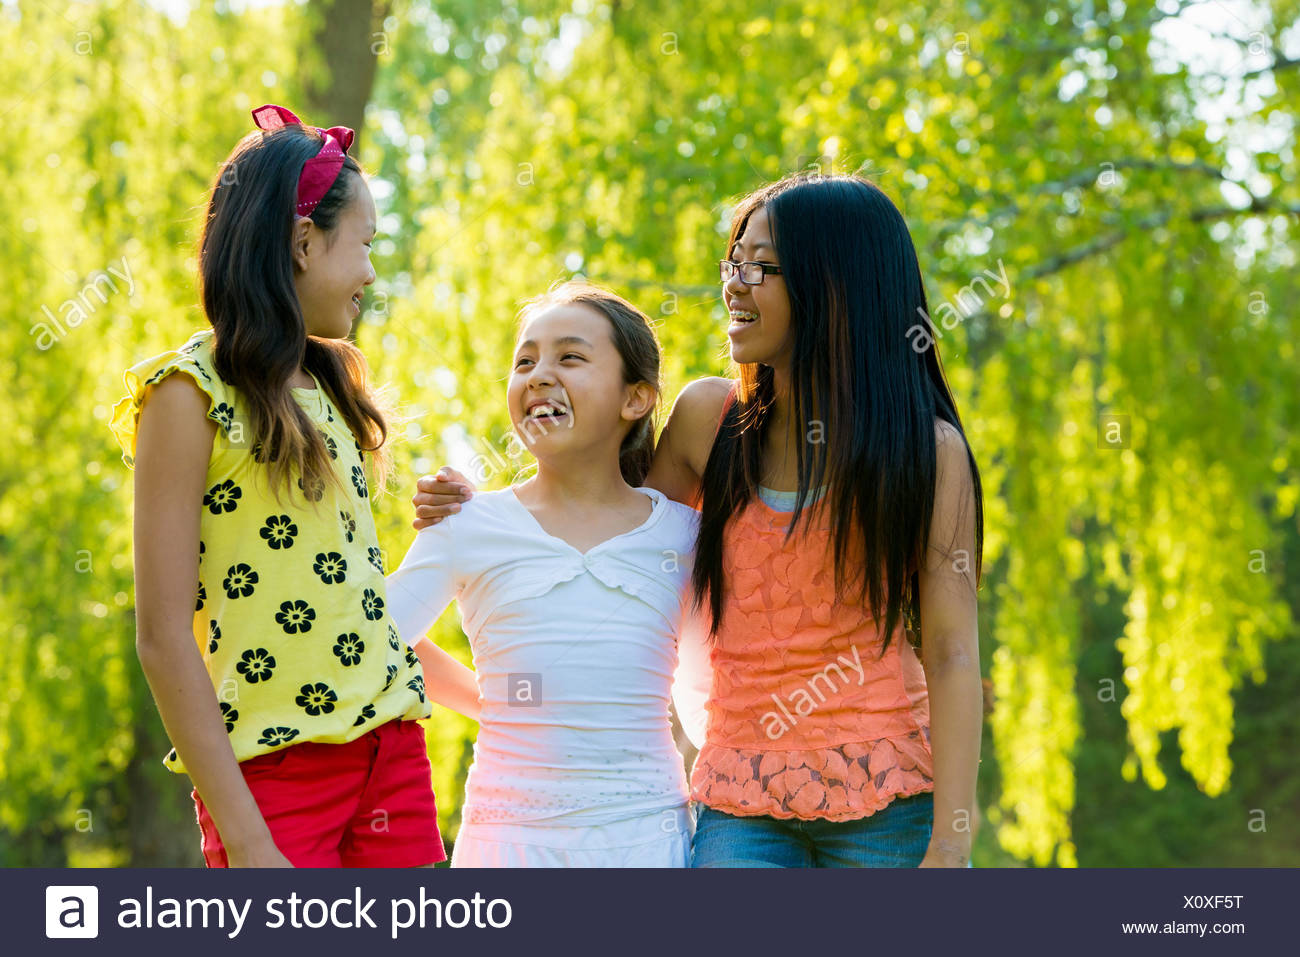 Three girls in park with arms around each other - Stock Image